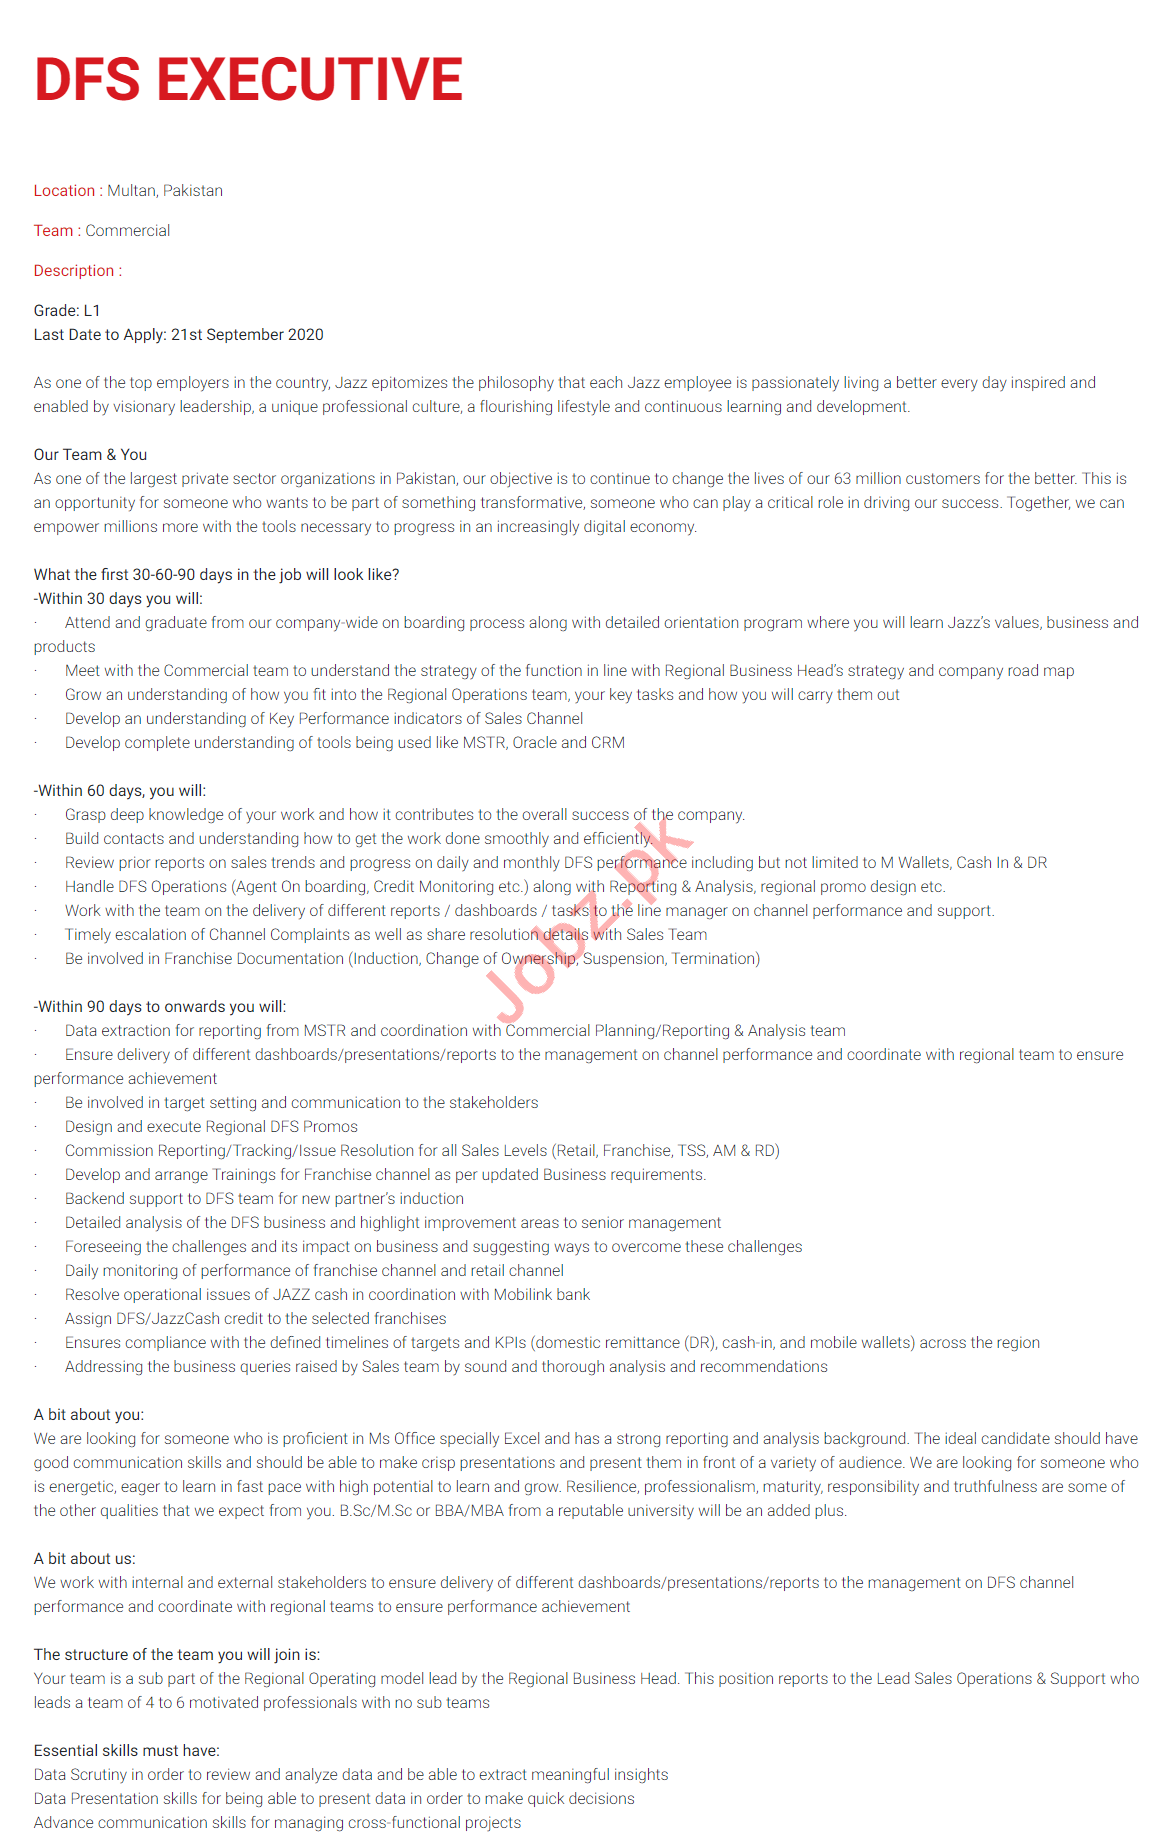 DFS Executive Jobs 2020 in Jazz Telecom Multan